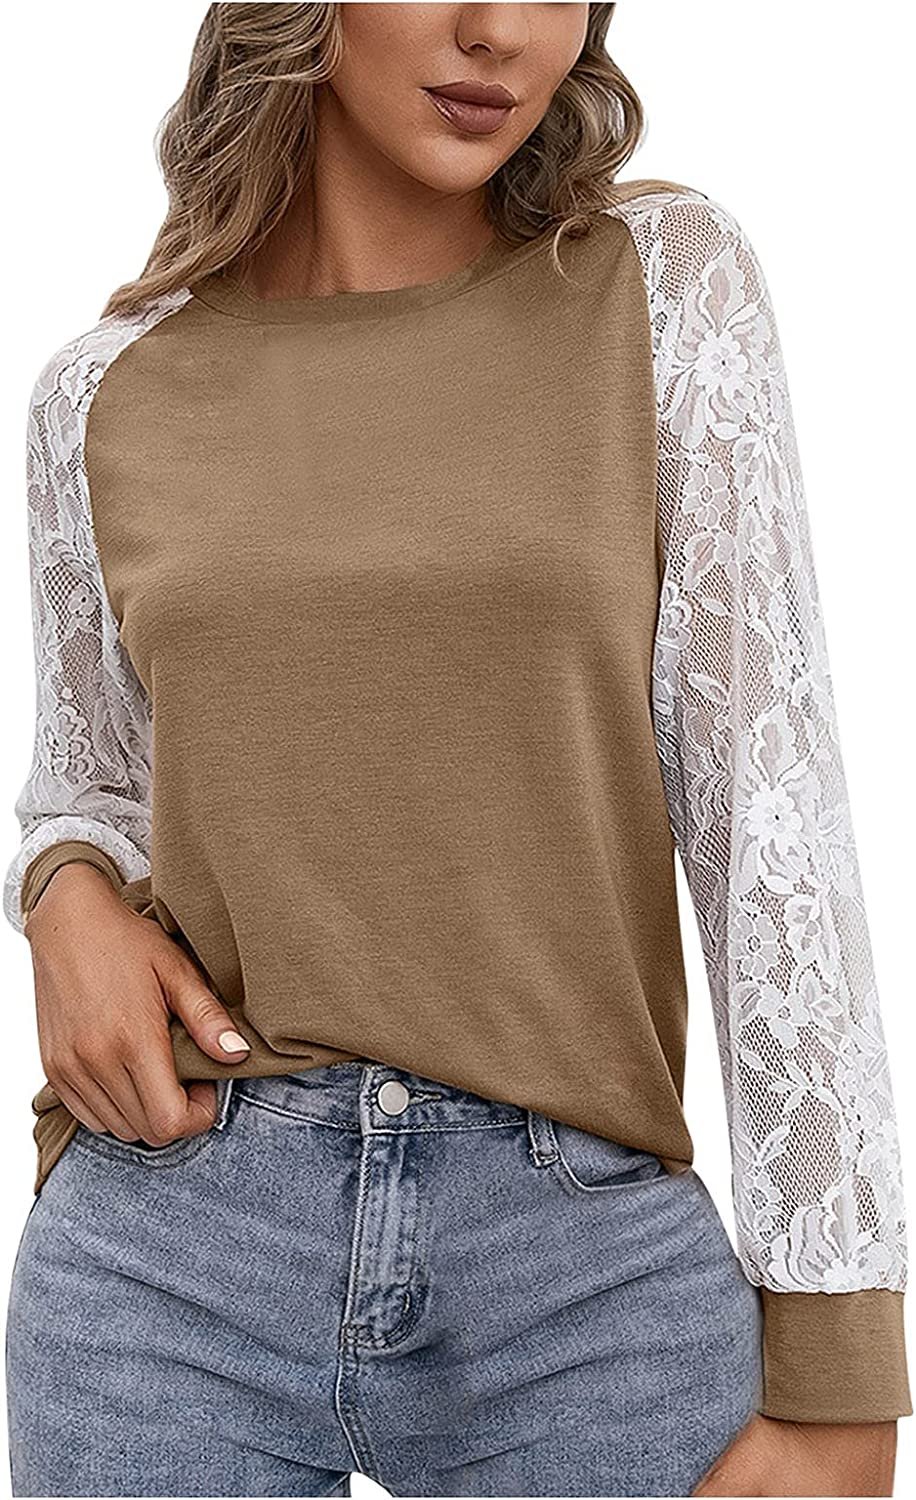 Women's Casual Color Block Lace Stitching Slim Max 69% OFF T Long- Shirt Fit Ranking TOP2